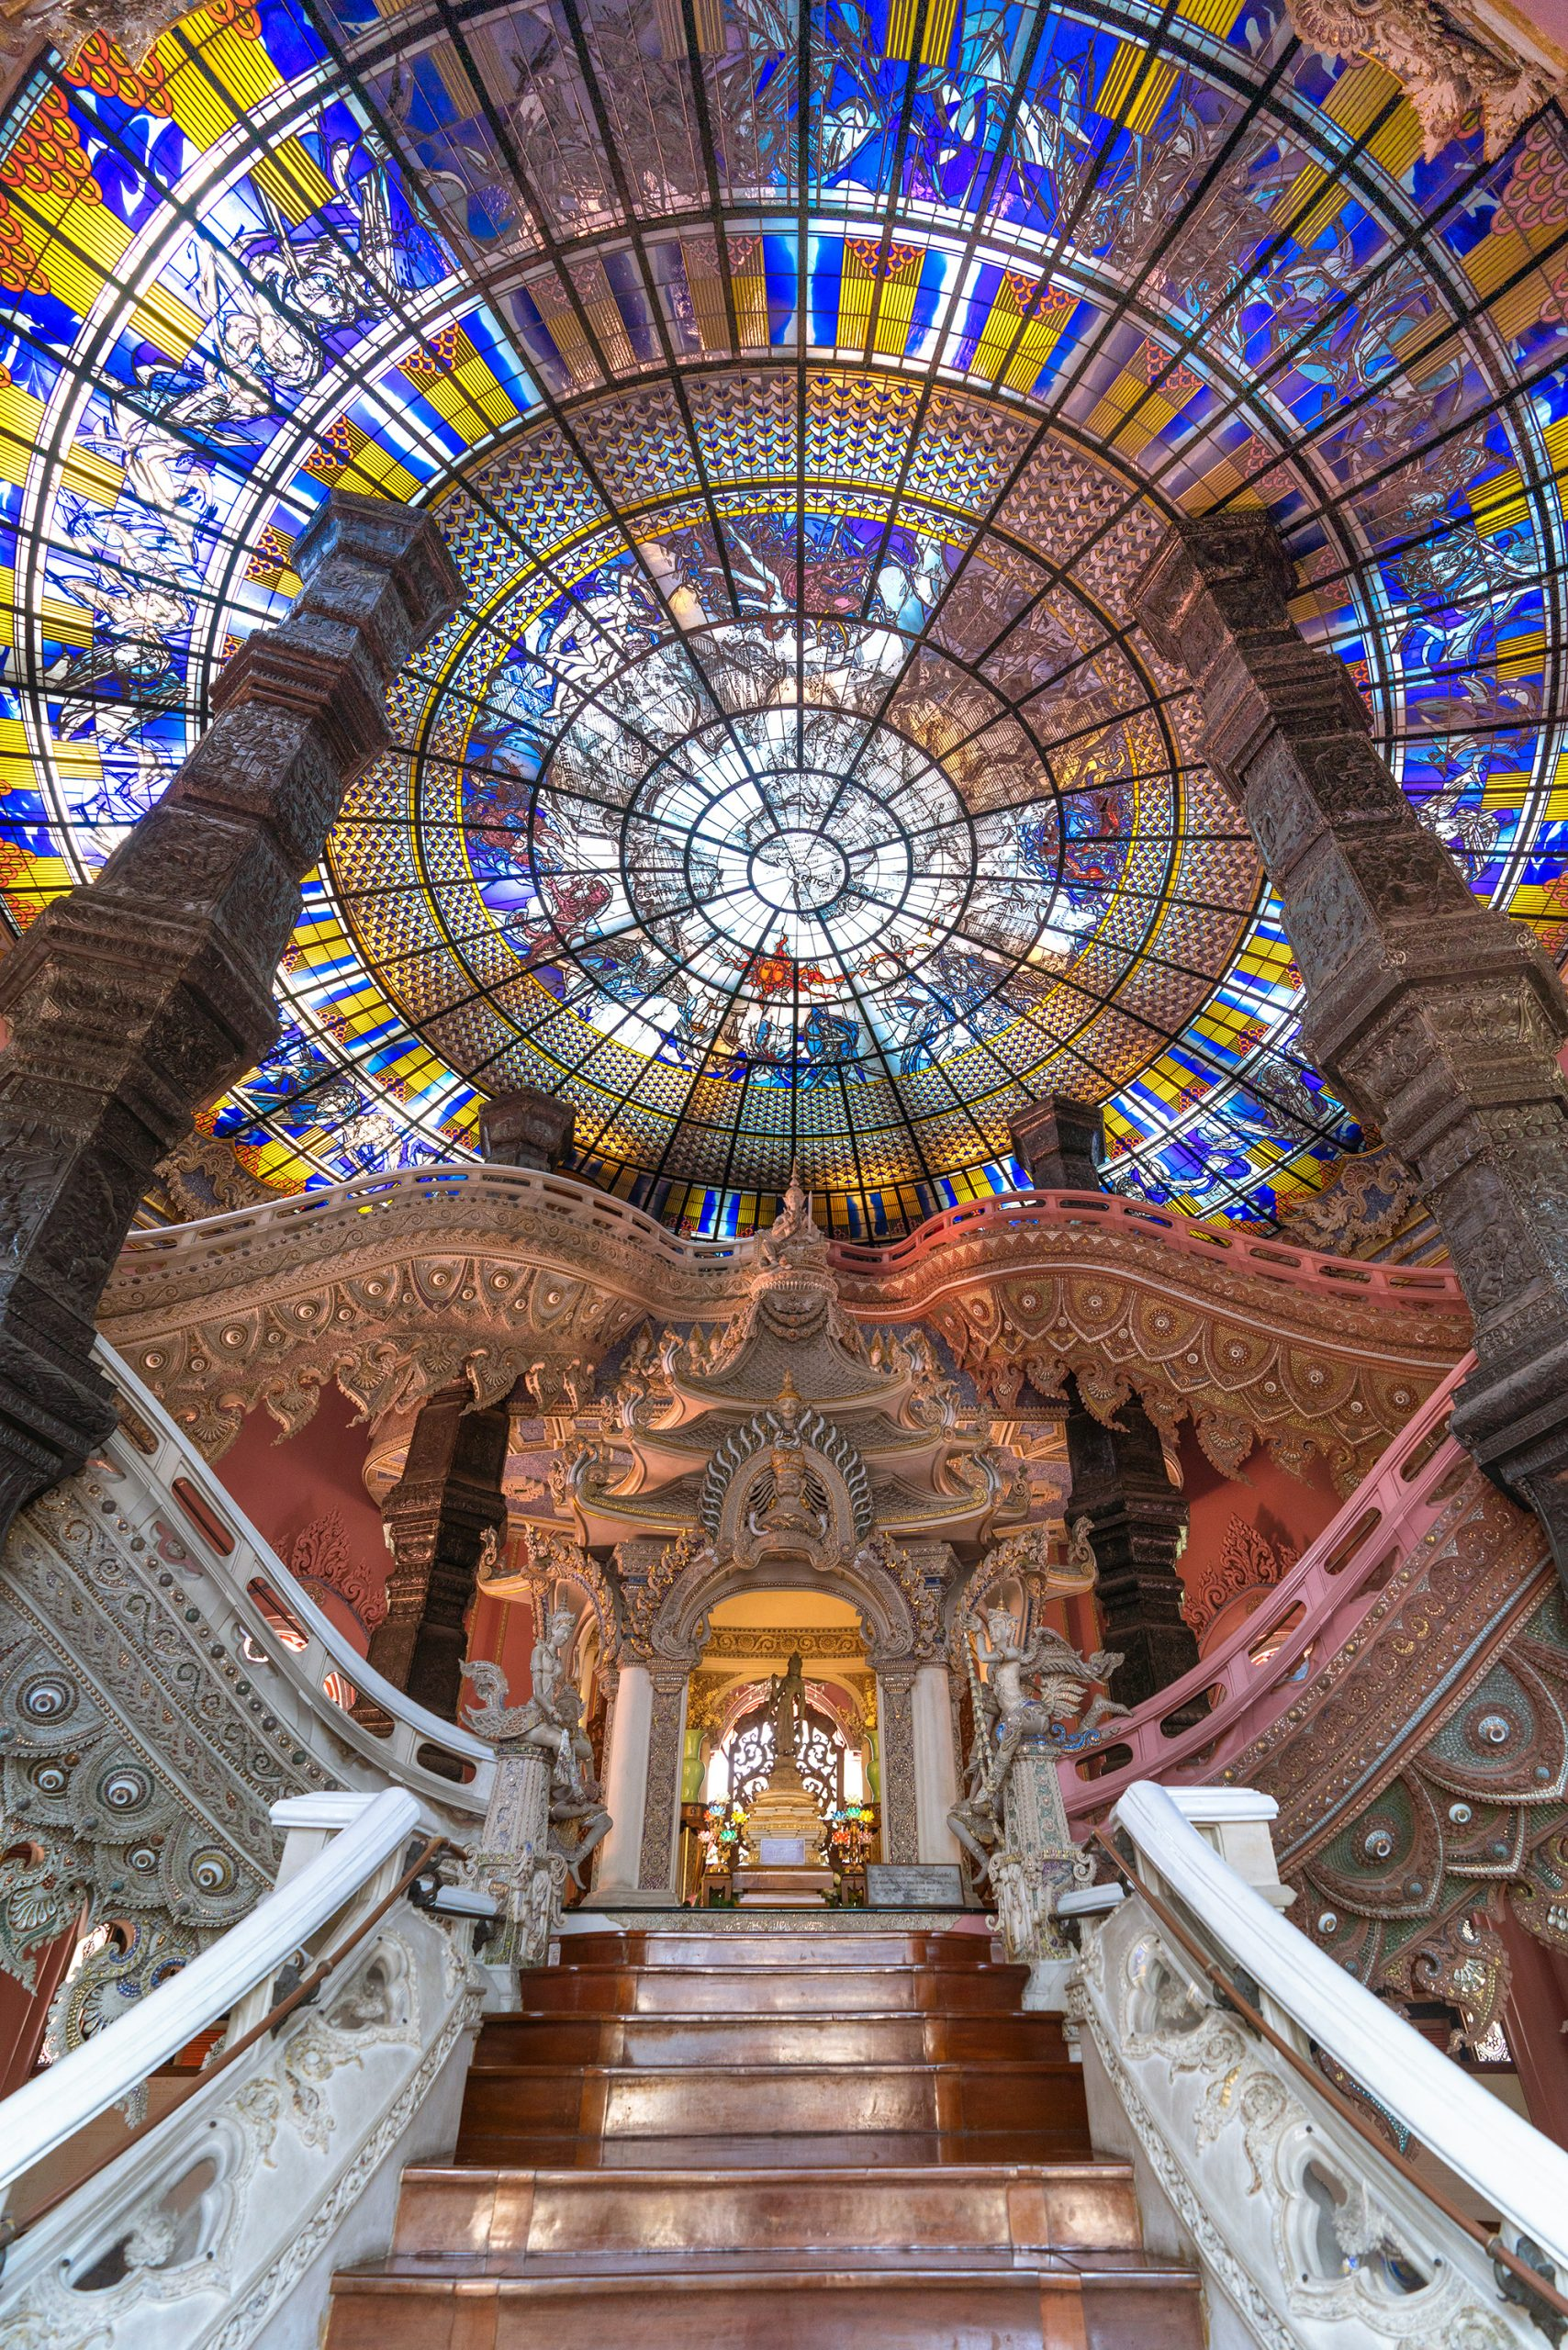 Erawan Museum's ornate architecture is sure to make your jaw drop!